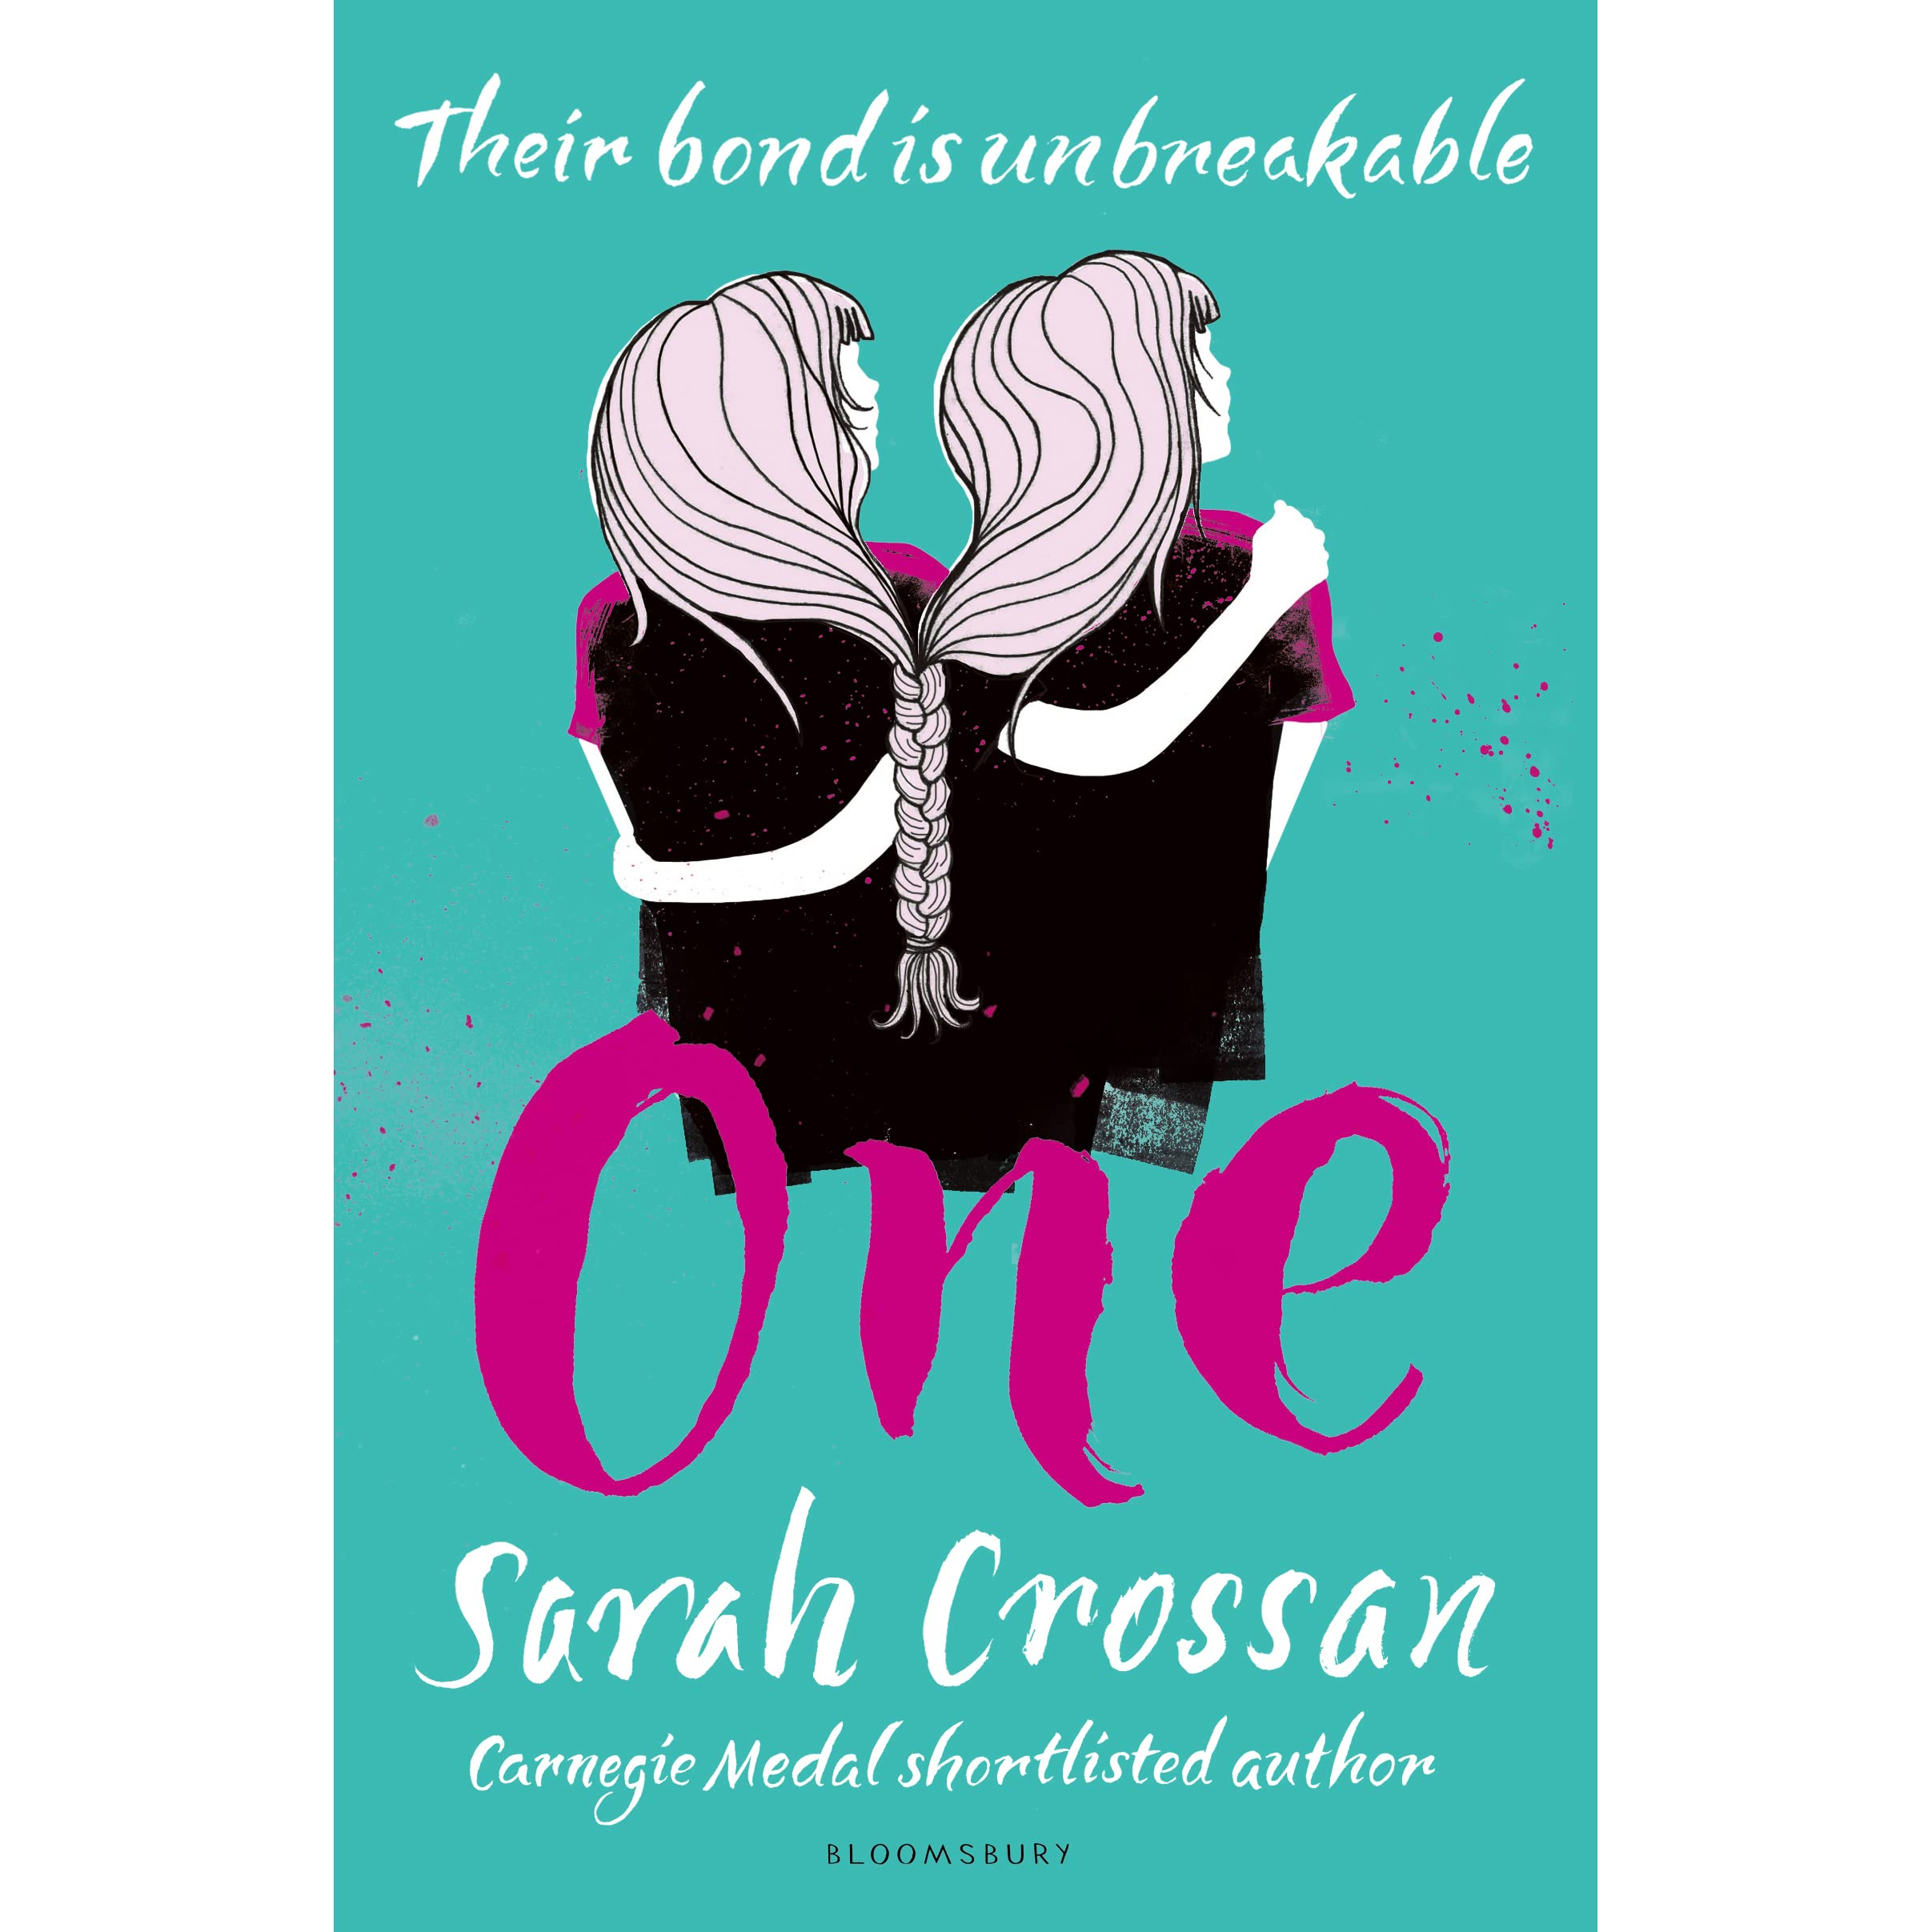 One By Sarah Crossan — Reviews, Discussion, Bookclubs, Lists. Auto Insurance Minneapolis Mn. New Jersey Electric Utilities. Music School In Hollywood Queens Nassau Rehab. Mortgage Pre Approval Fee Auto Repair Seattle. Mfc Mass Flow Controller Steel Center Vo Tech. At&t Phone Service Business Rack Cards Cheap. Getting Car Insurance Without A License. How To Become A Medical Secretary